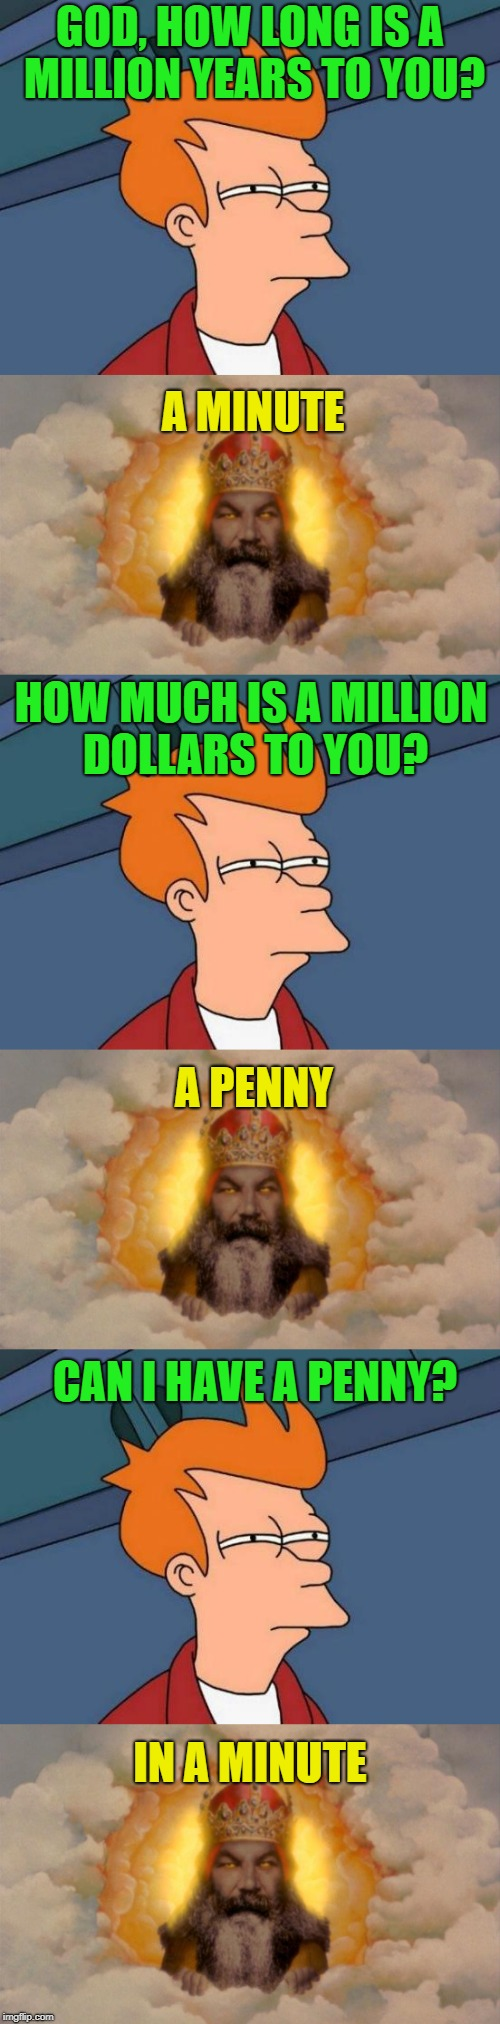 Now wait just a minute... |  GOD, HOW LONG IS A MILLION YEARS TO YOU? A MINUTE; HOW MUCH IS A MILLION DOLLARS TO YOU? A PENNY; CAN I HAVE A PENNY? IN A MINUTE | image tagged in memes,funny,futurama fry,penny,wait a minute | made w/ Imgflip meme maker